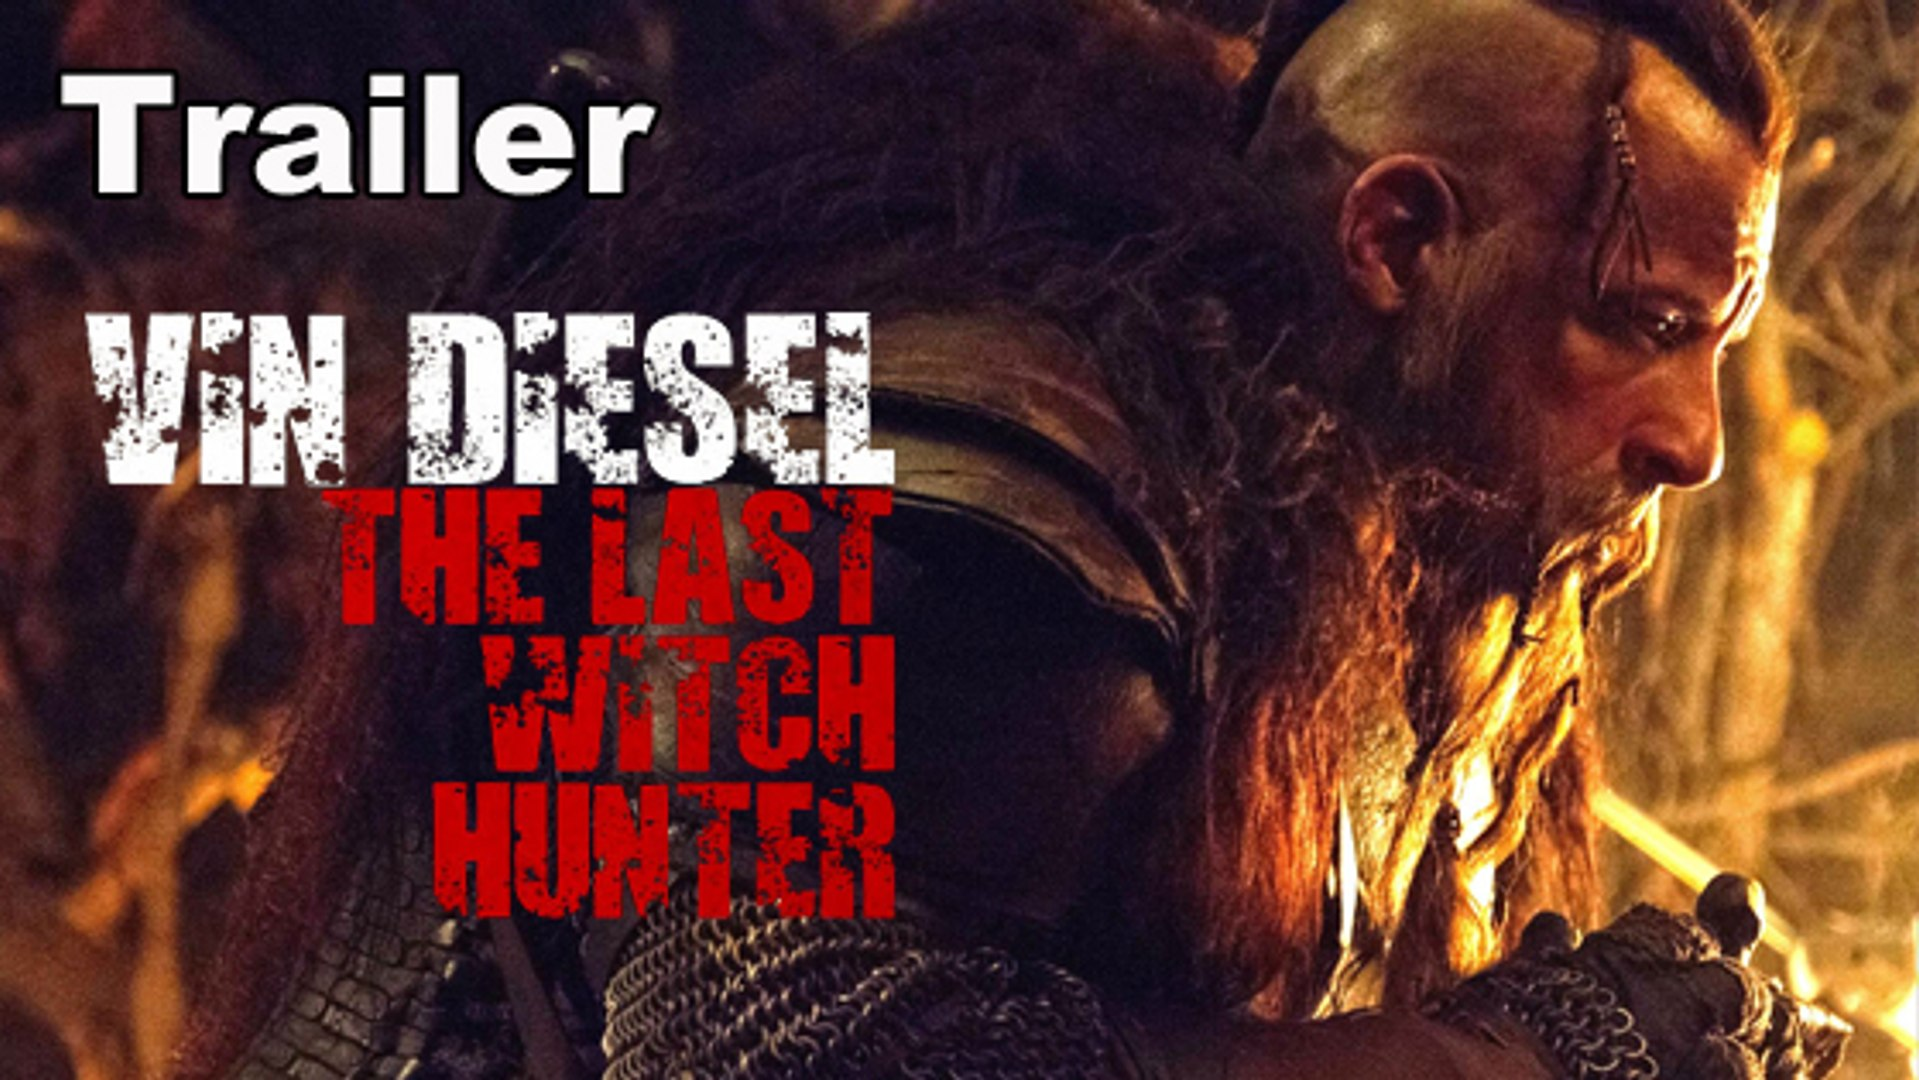 The Last Witch Hunter - Official Teaser Trailer #1 [Full HD] (Vin Diesel, Michael Caine)